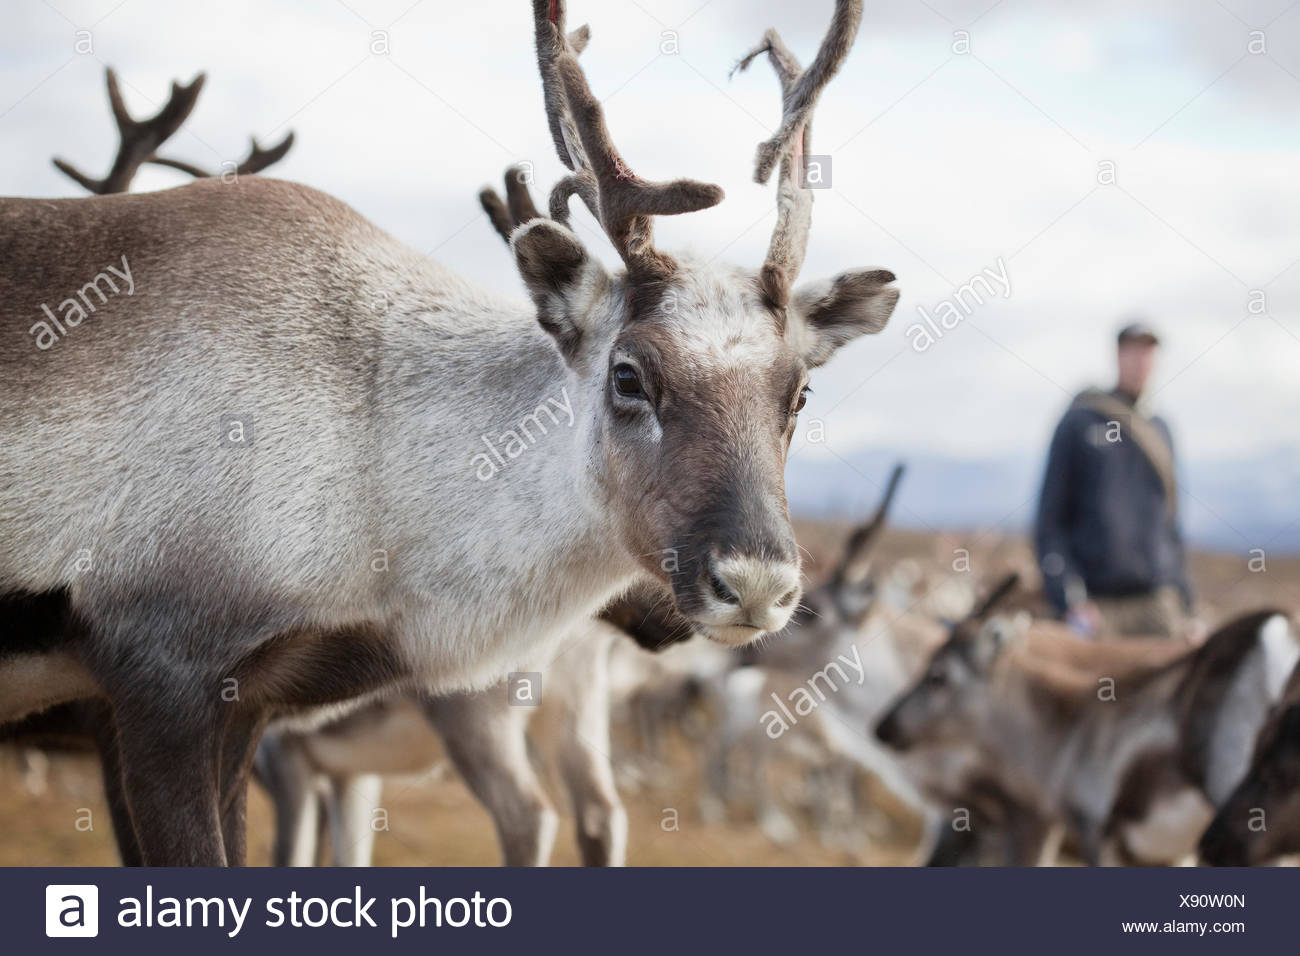 Sweden, Lapland, Levas, Reindeer (Rangifer tarandus) looking at camera Stock Photo